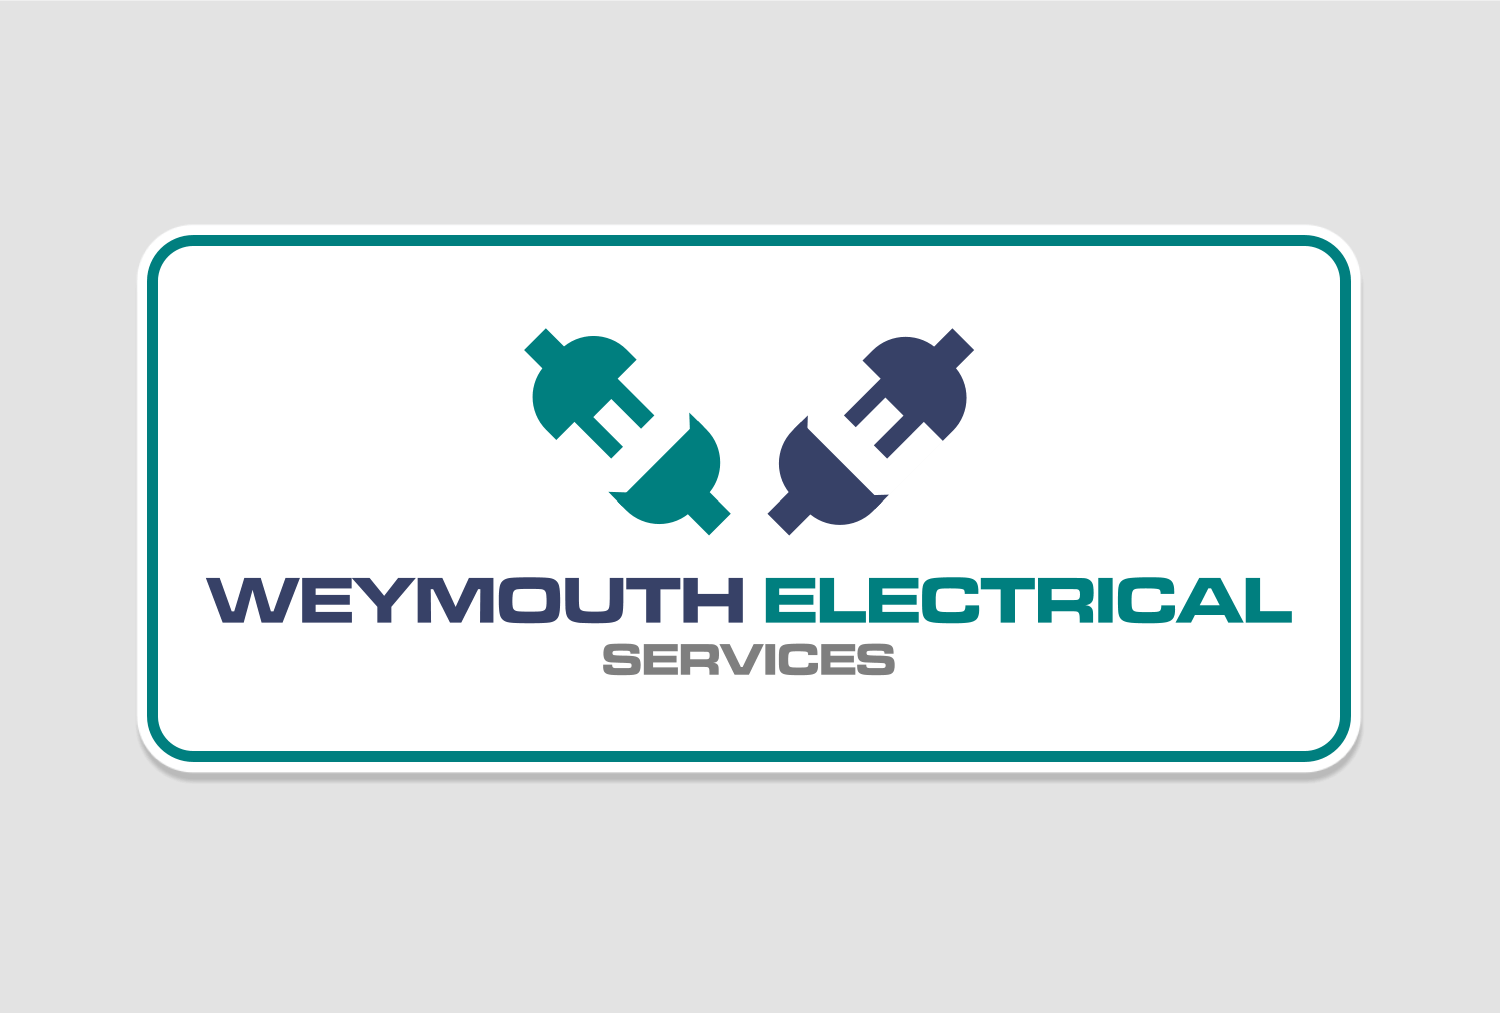 Weymouth Electrical Services